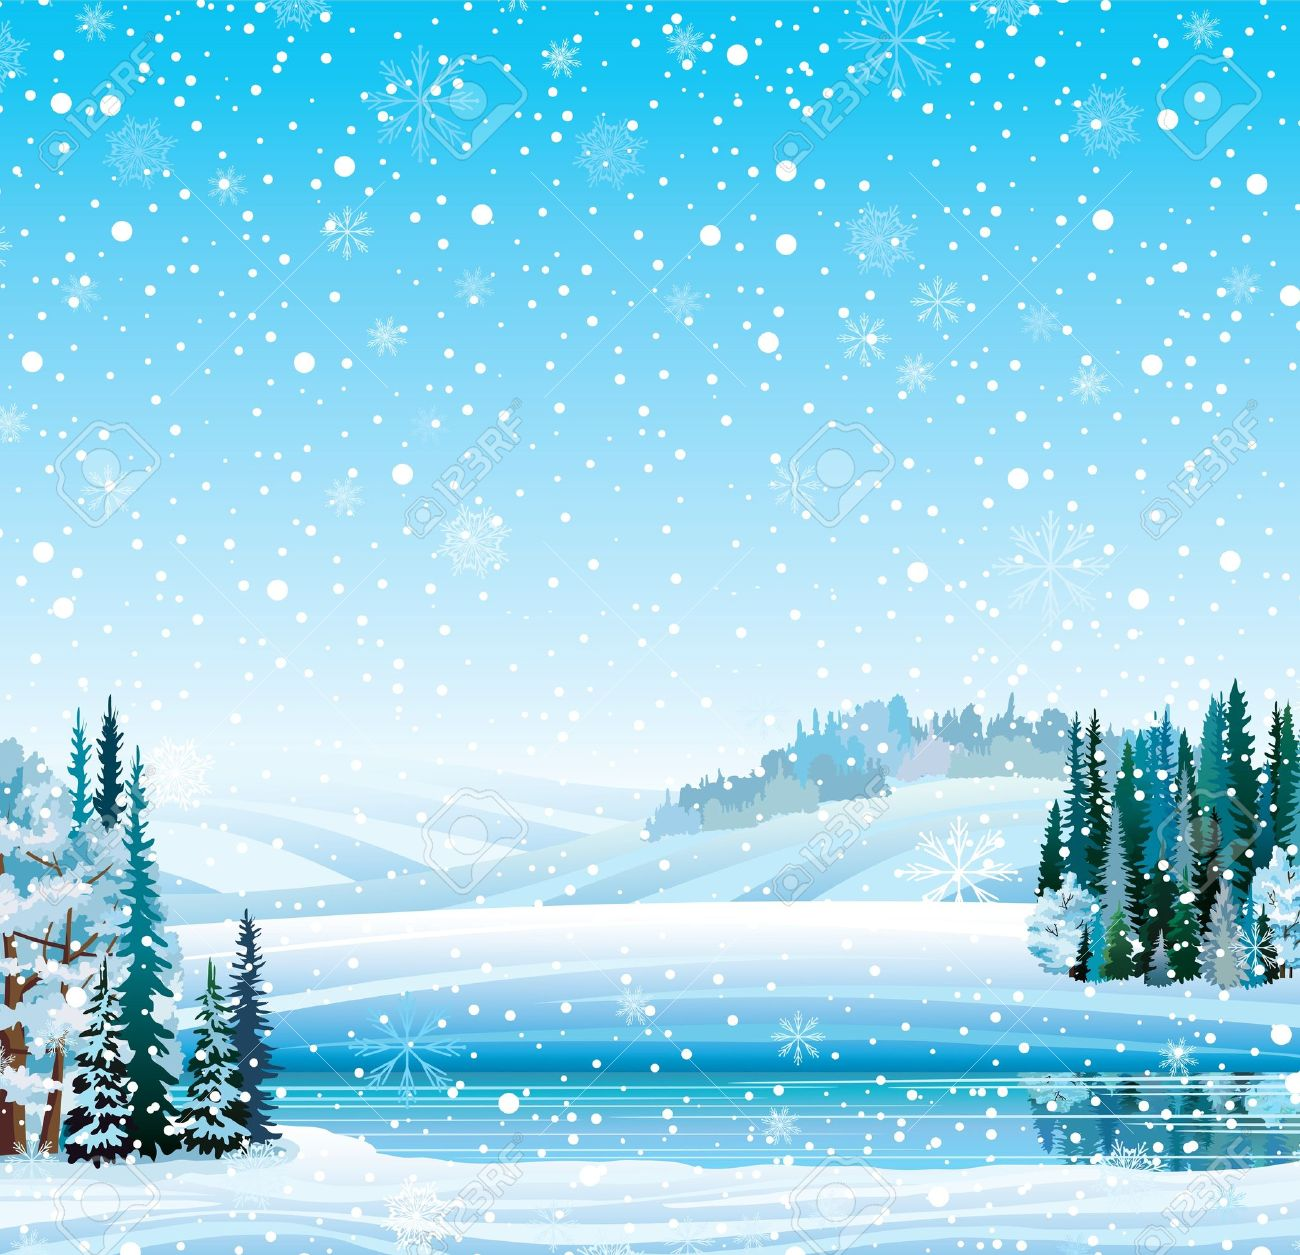 Vector winter landscape with frozen lake, forest, hill and snowfall - 16965862